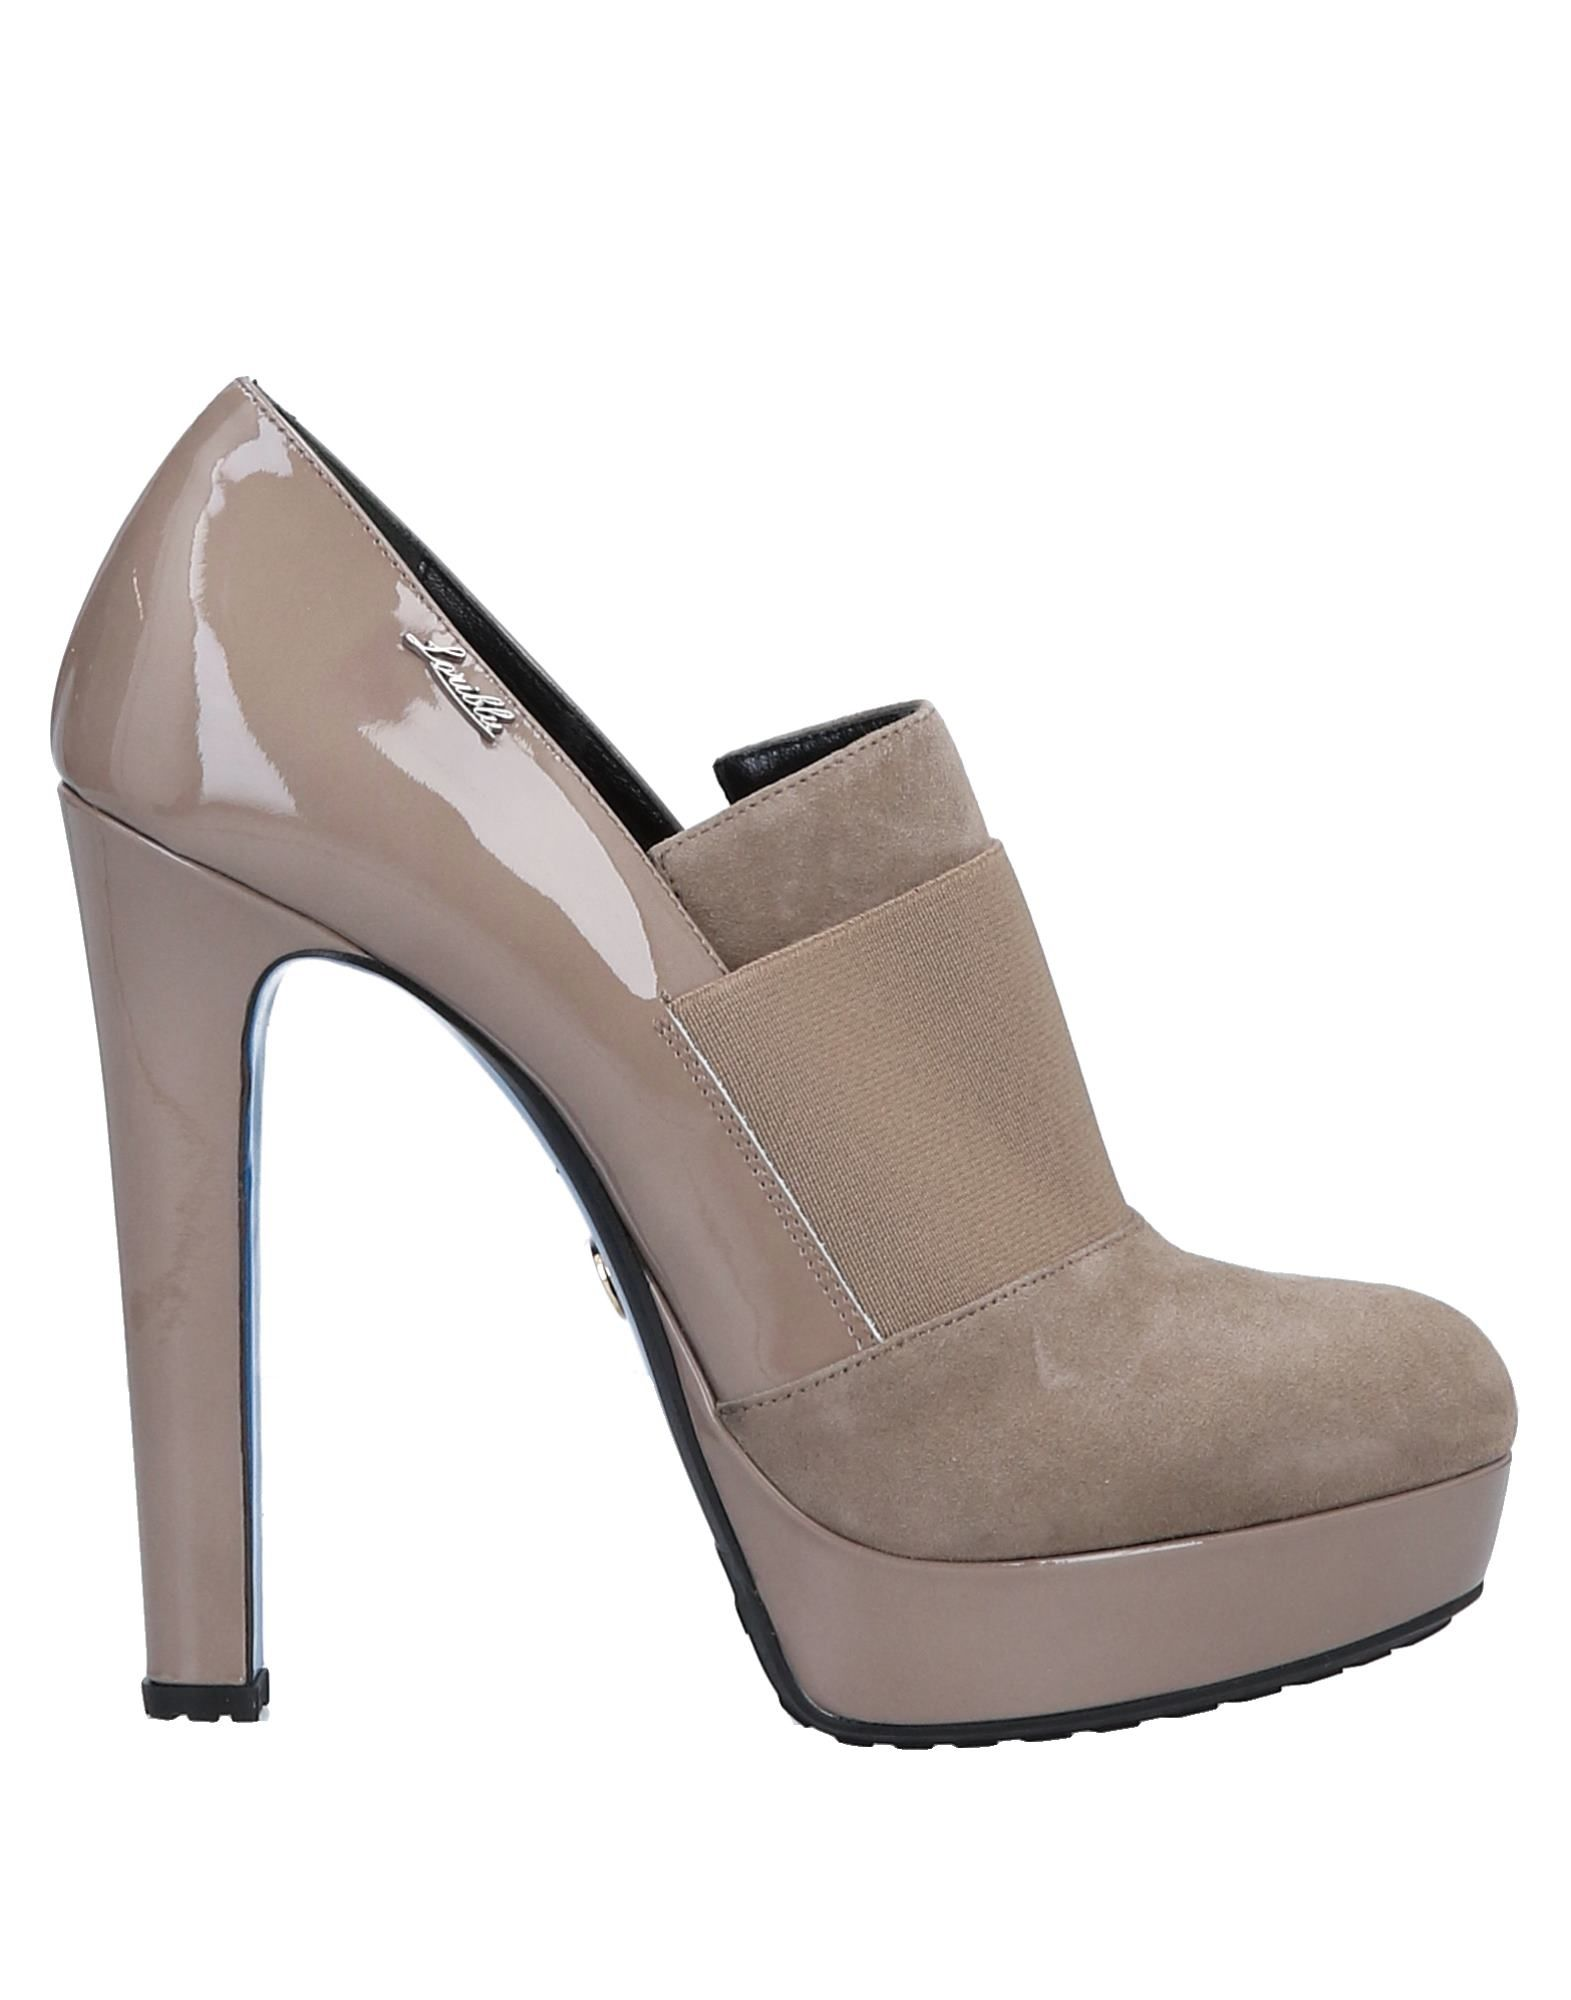 Loriblu Ankle Boot Boots - Women Loriblu Ankle Boots Boot online on  United Kingdom - 11561449JV 99f968